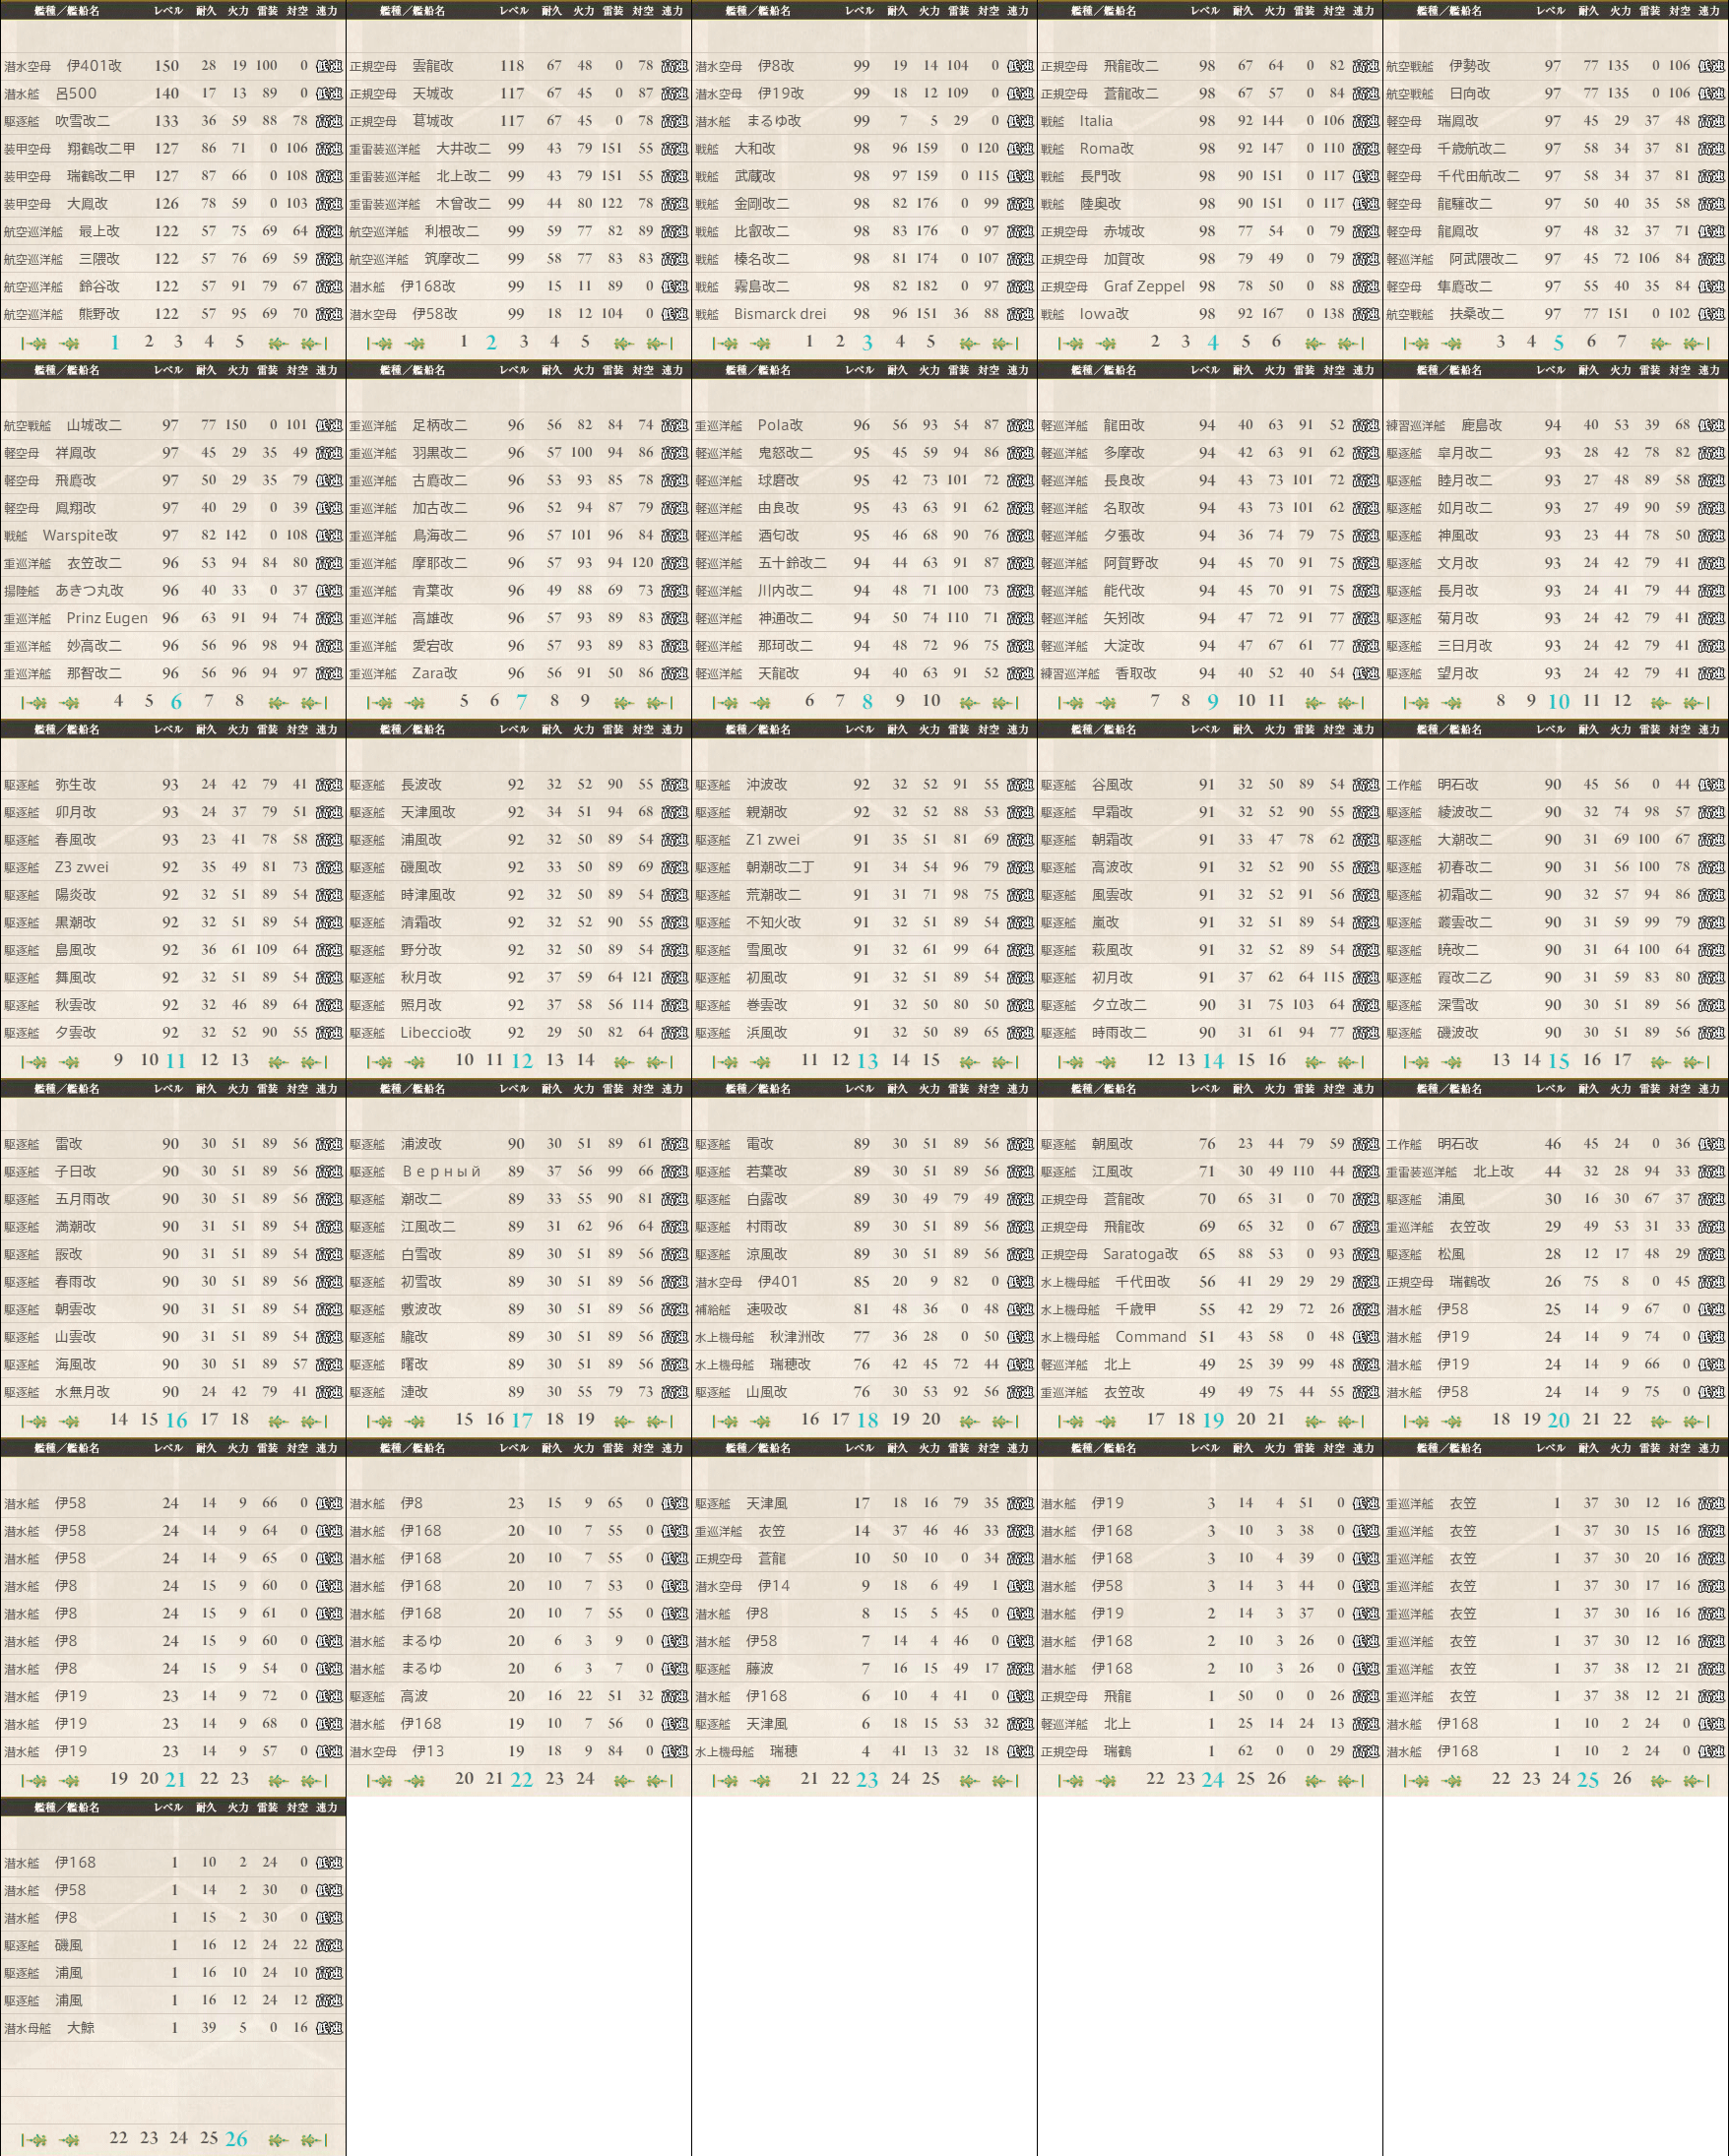 data.kancolle.levelsort.20170226.png